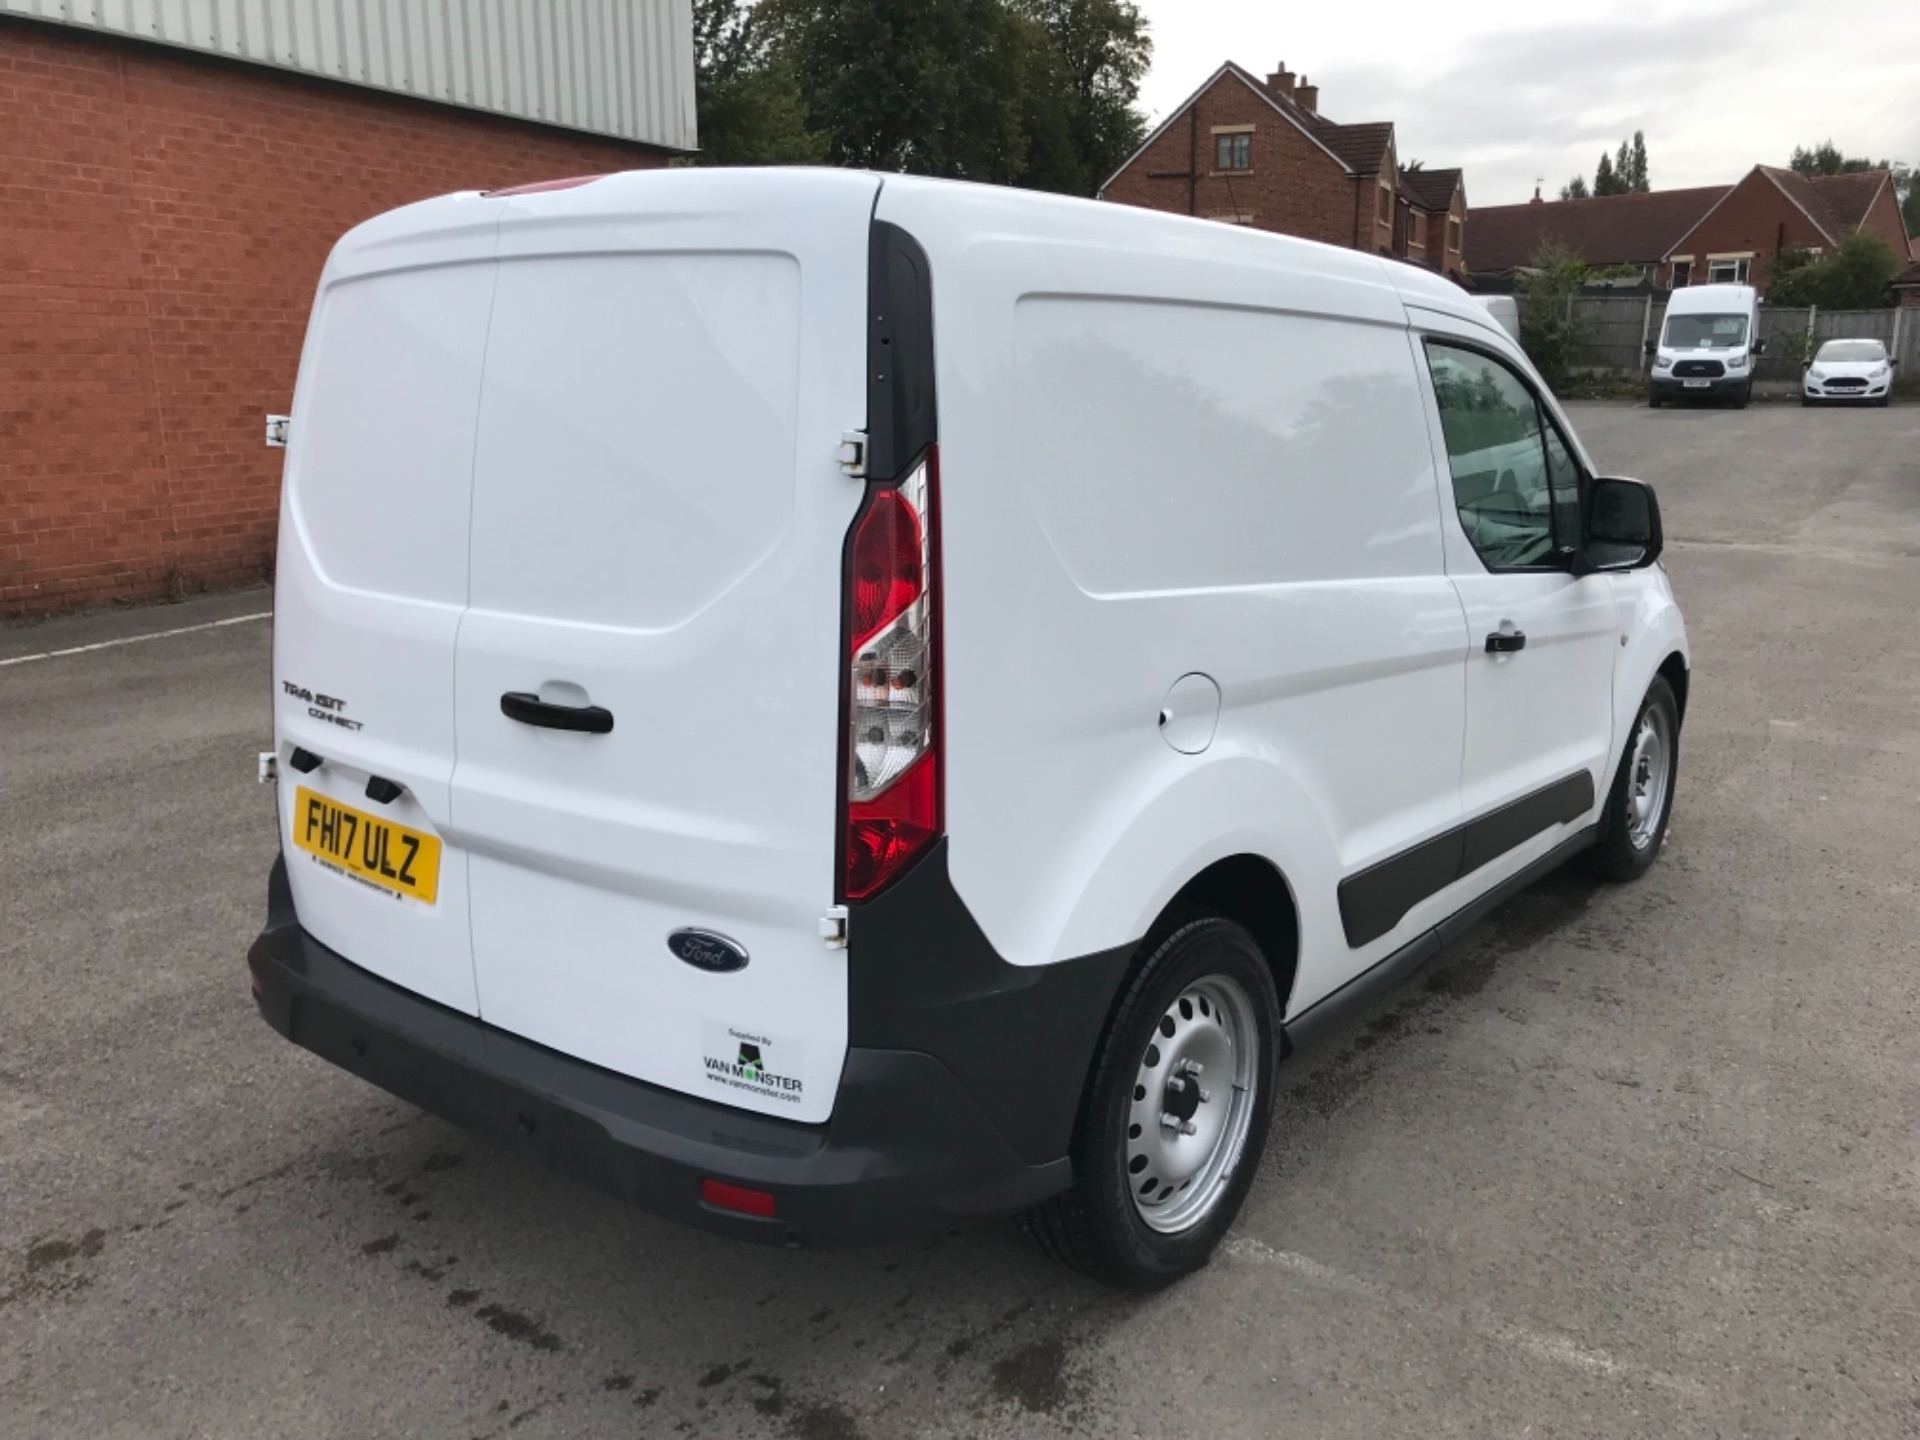 2017 Ford Transit Connect 1.5 Tdci 75Ps Van EURO 6 (FH17ULZ) Image 7